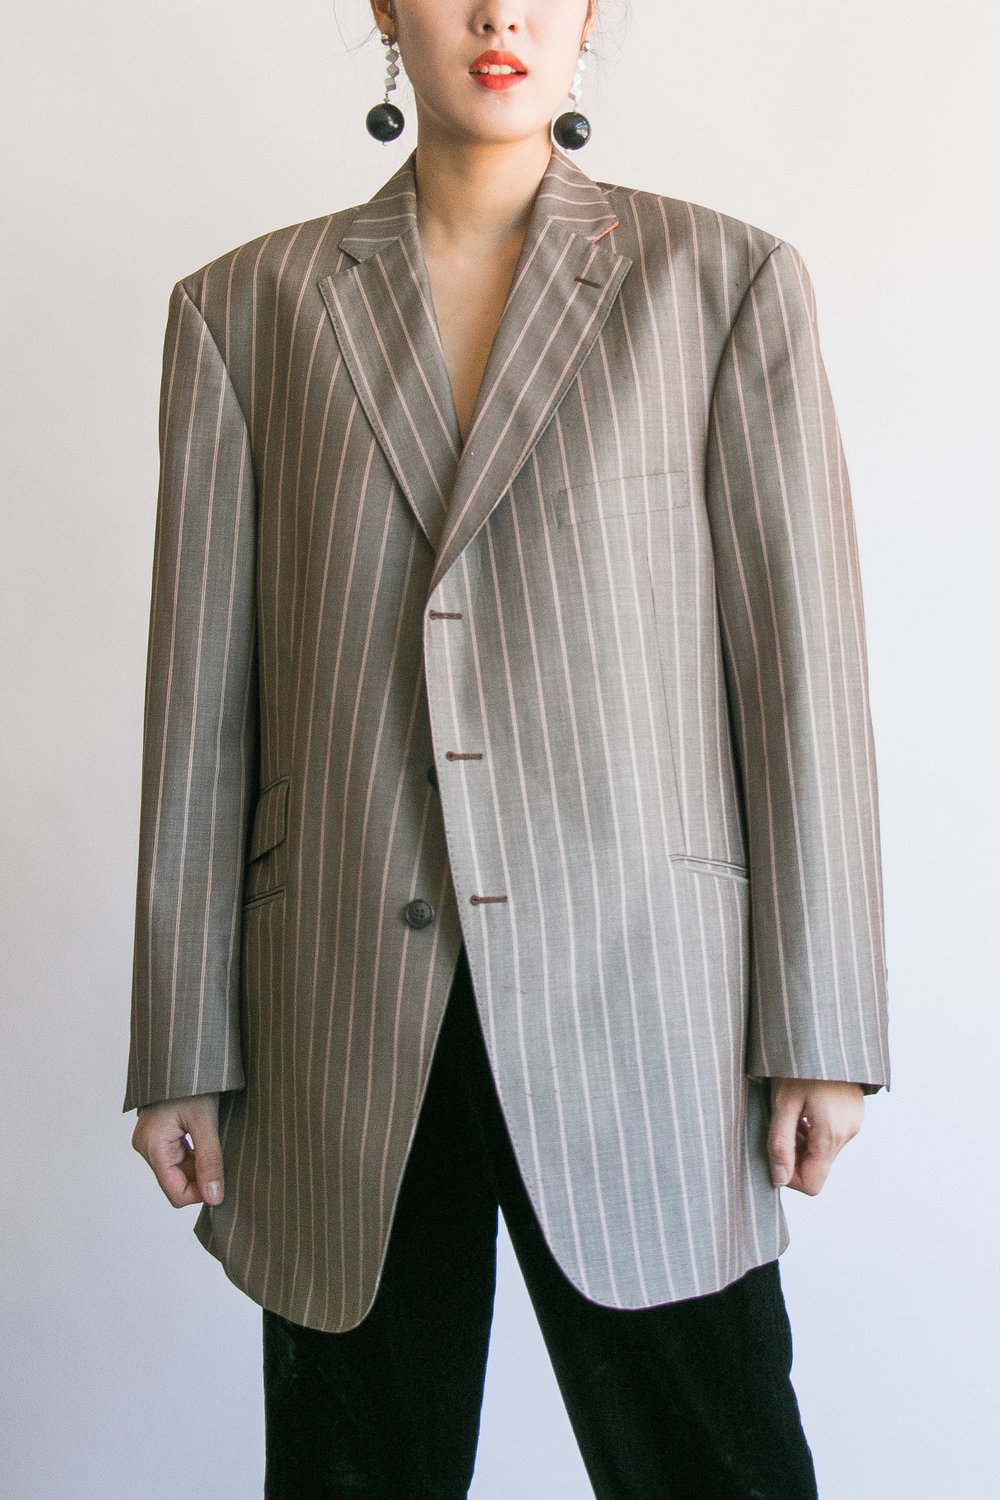 Vintage Taupe Striped Wool Oversized Menswear Blazer